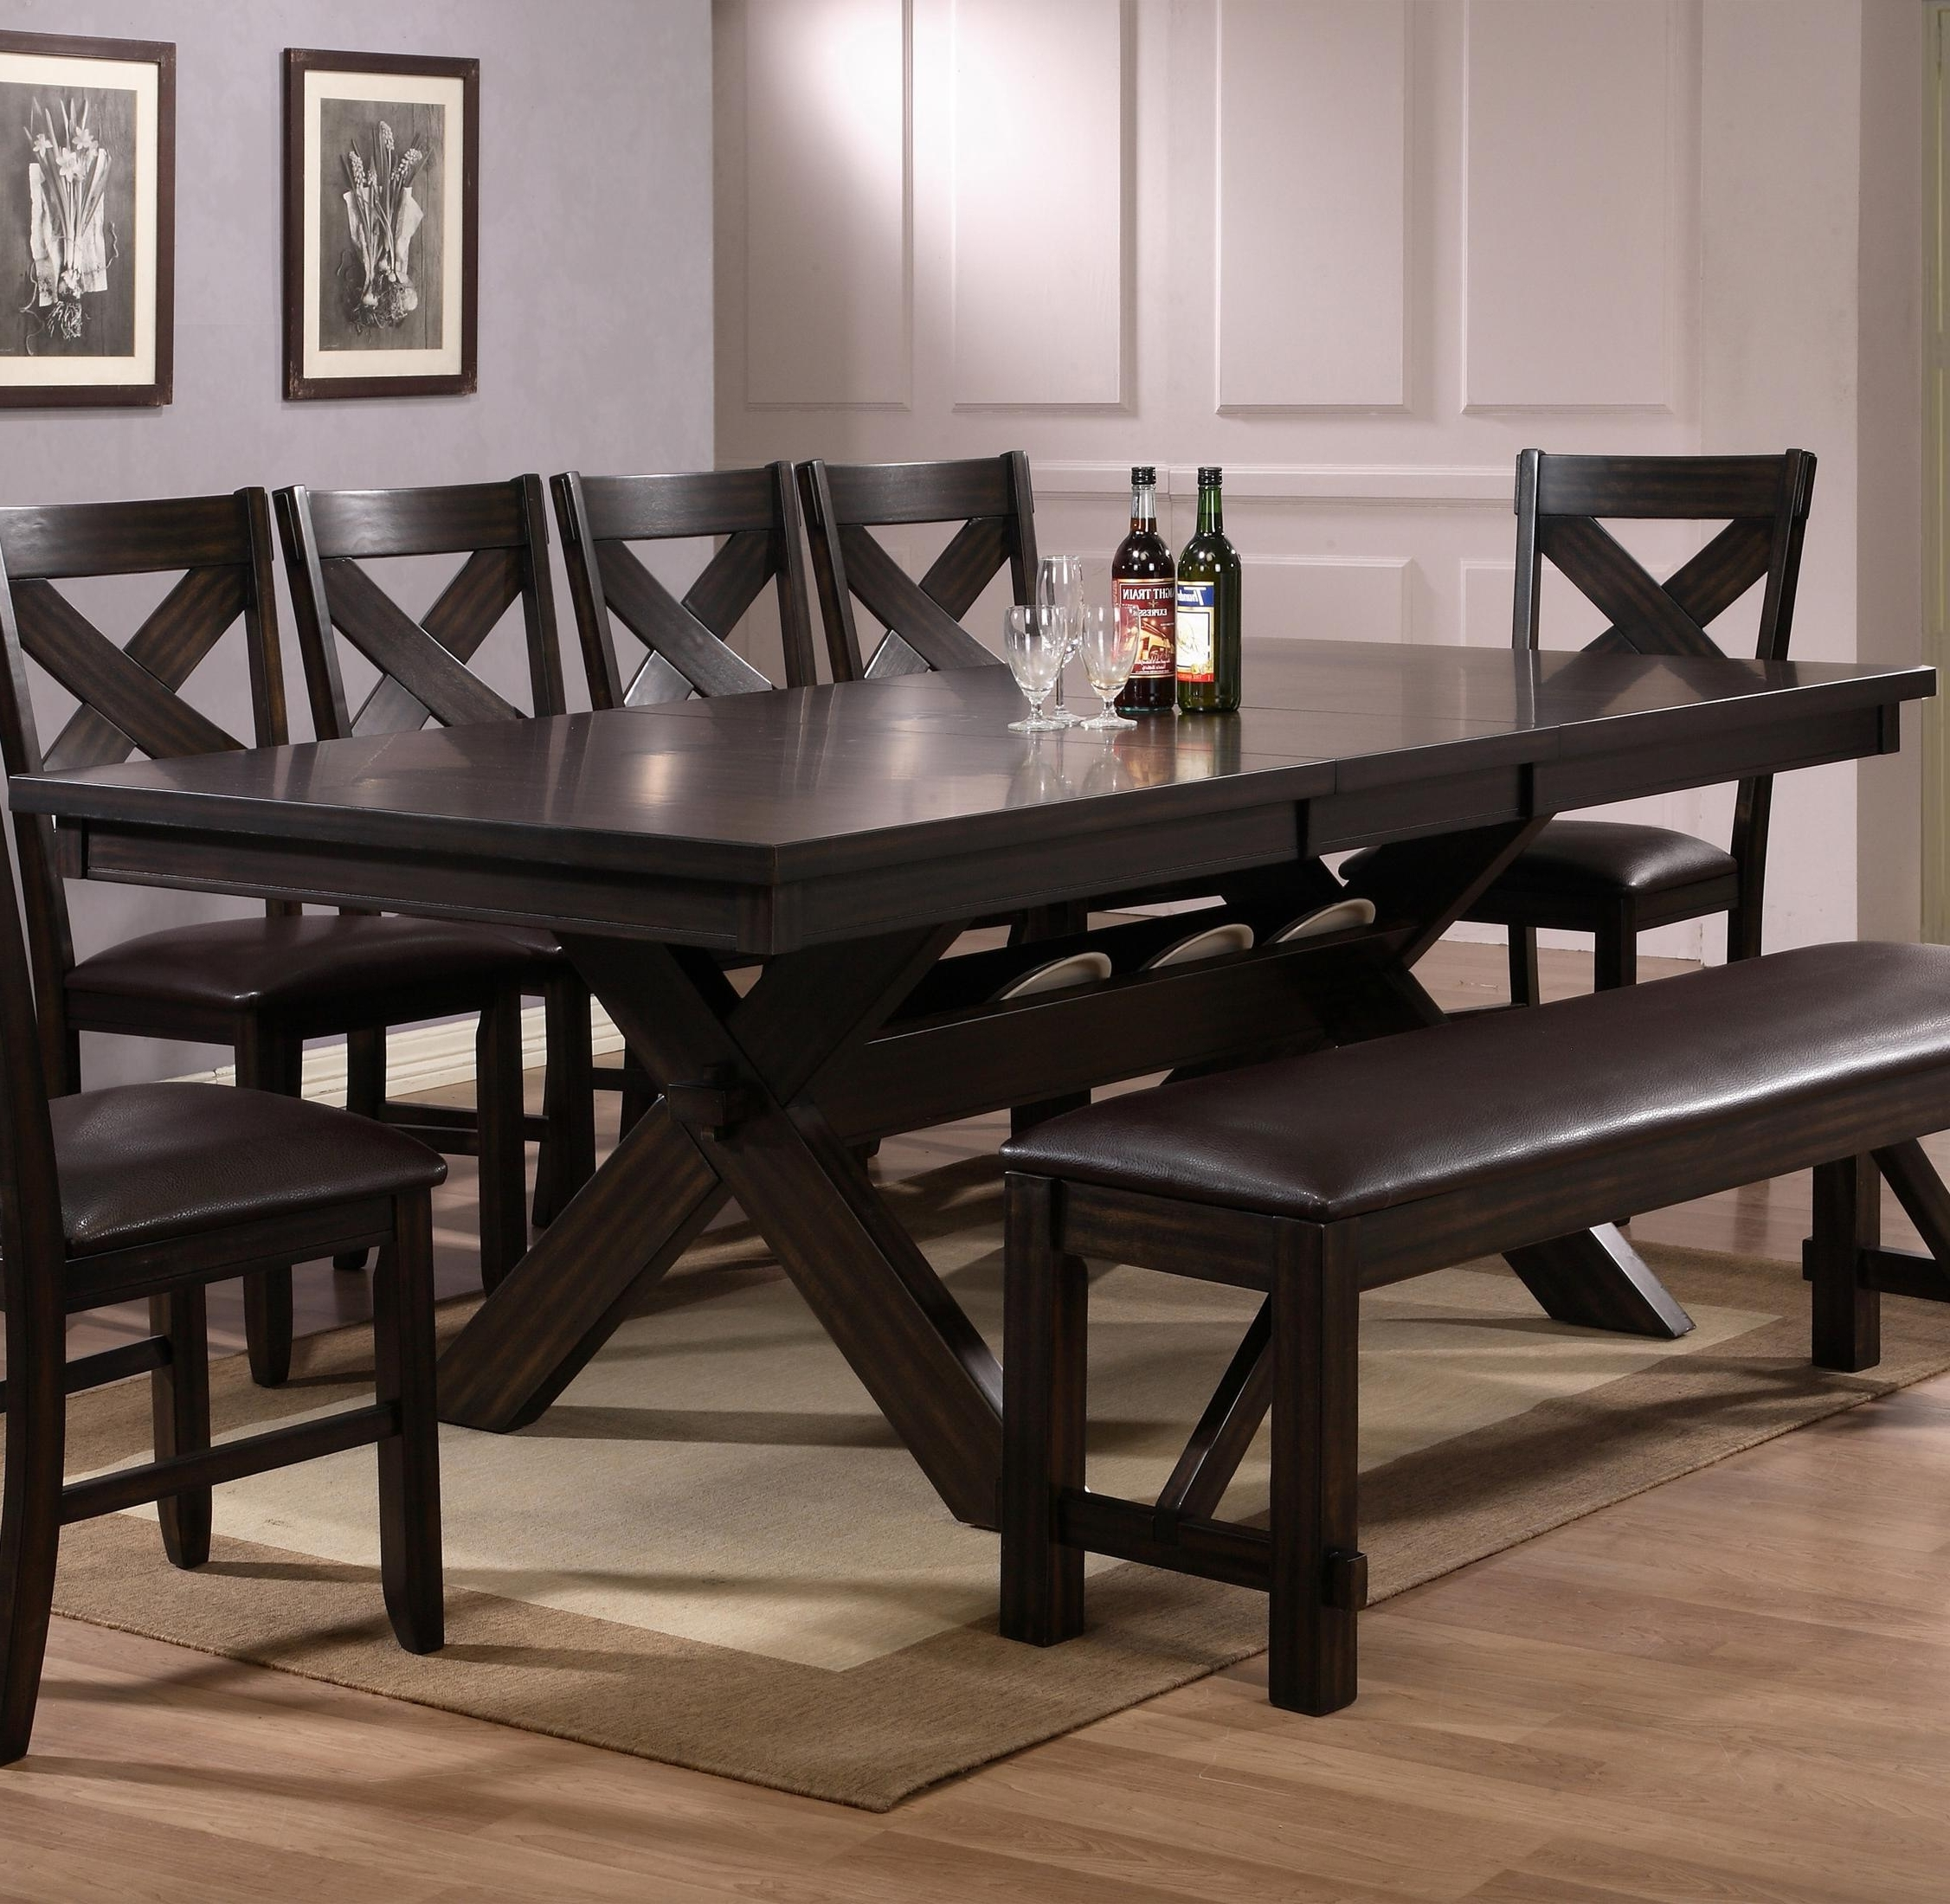 Dark Dining Tables For Preferred Belfort Essentials Havana Rectangular Dining Table With Storage (View 3 of 25)